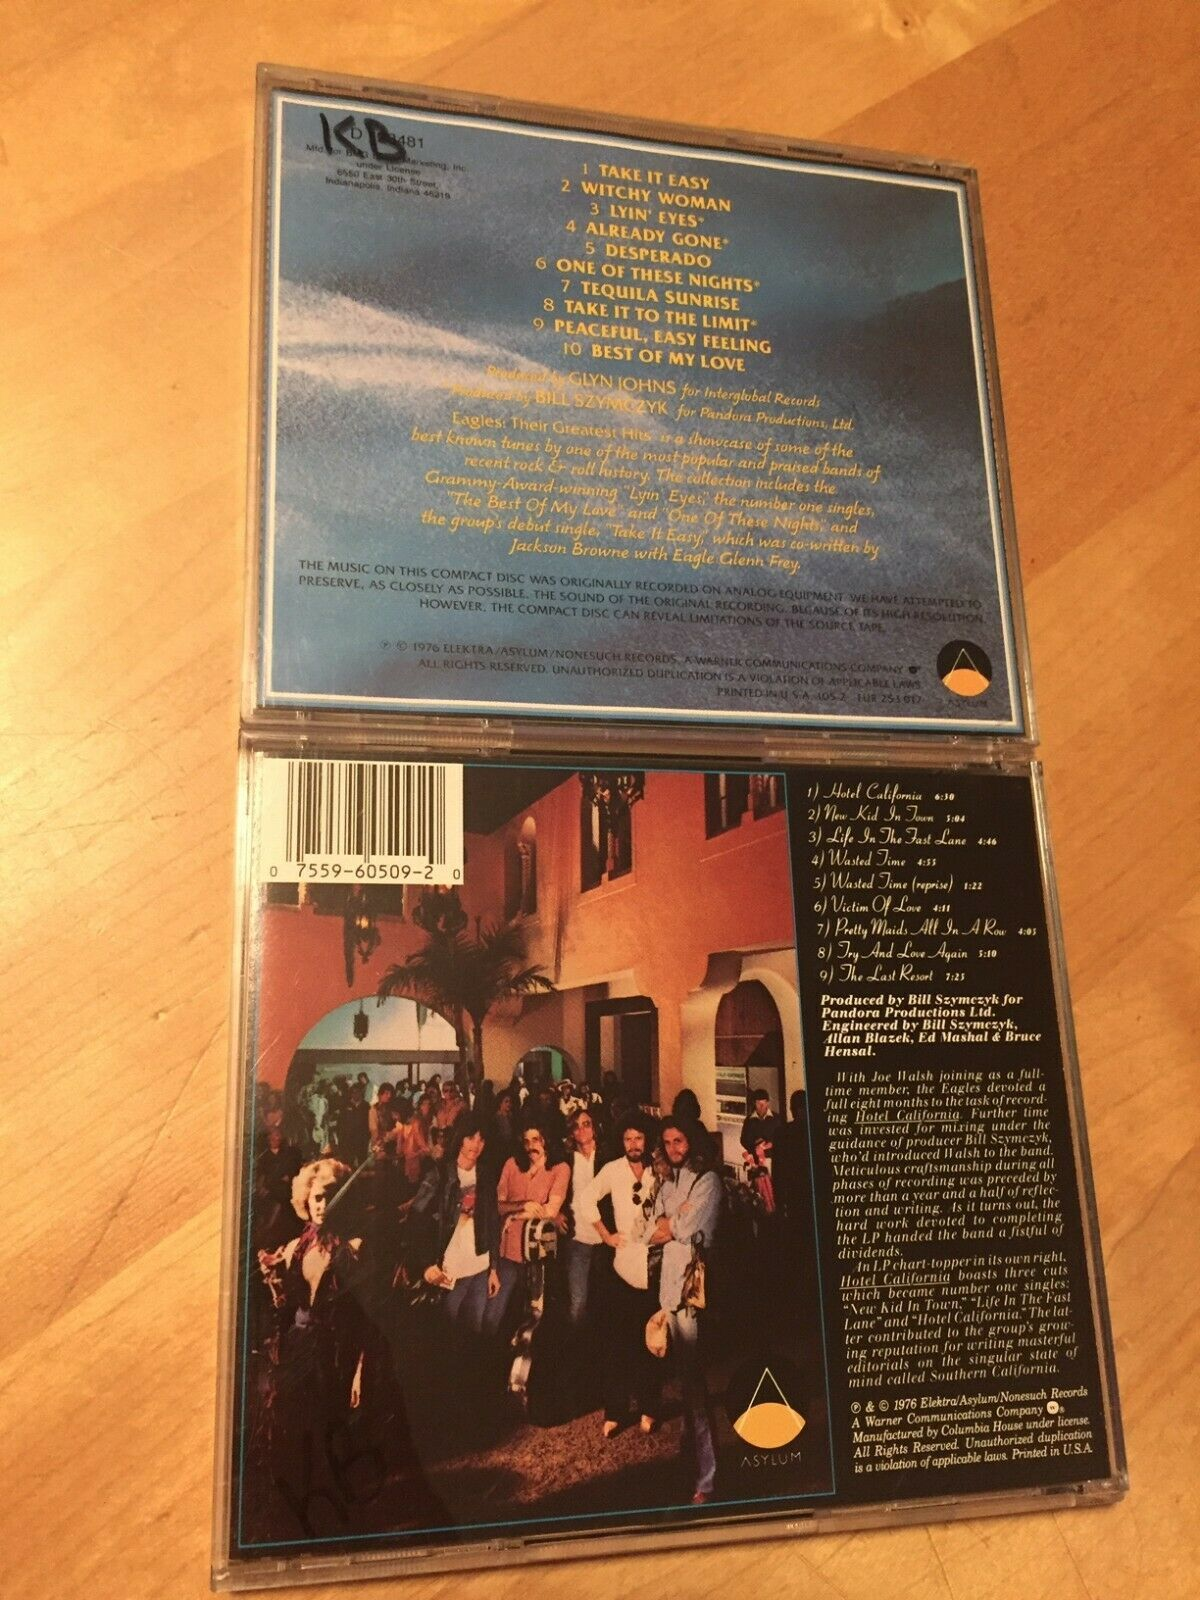 the eagles hotel california cd 1976 elektra bonus their greatest hits cd cds. Black Bedroom Furniture Sets. Home Design Ideas